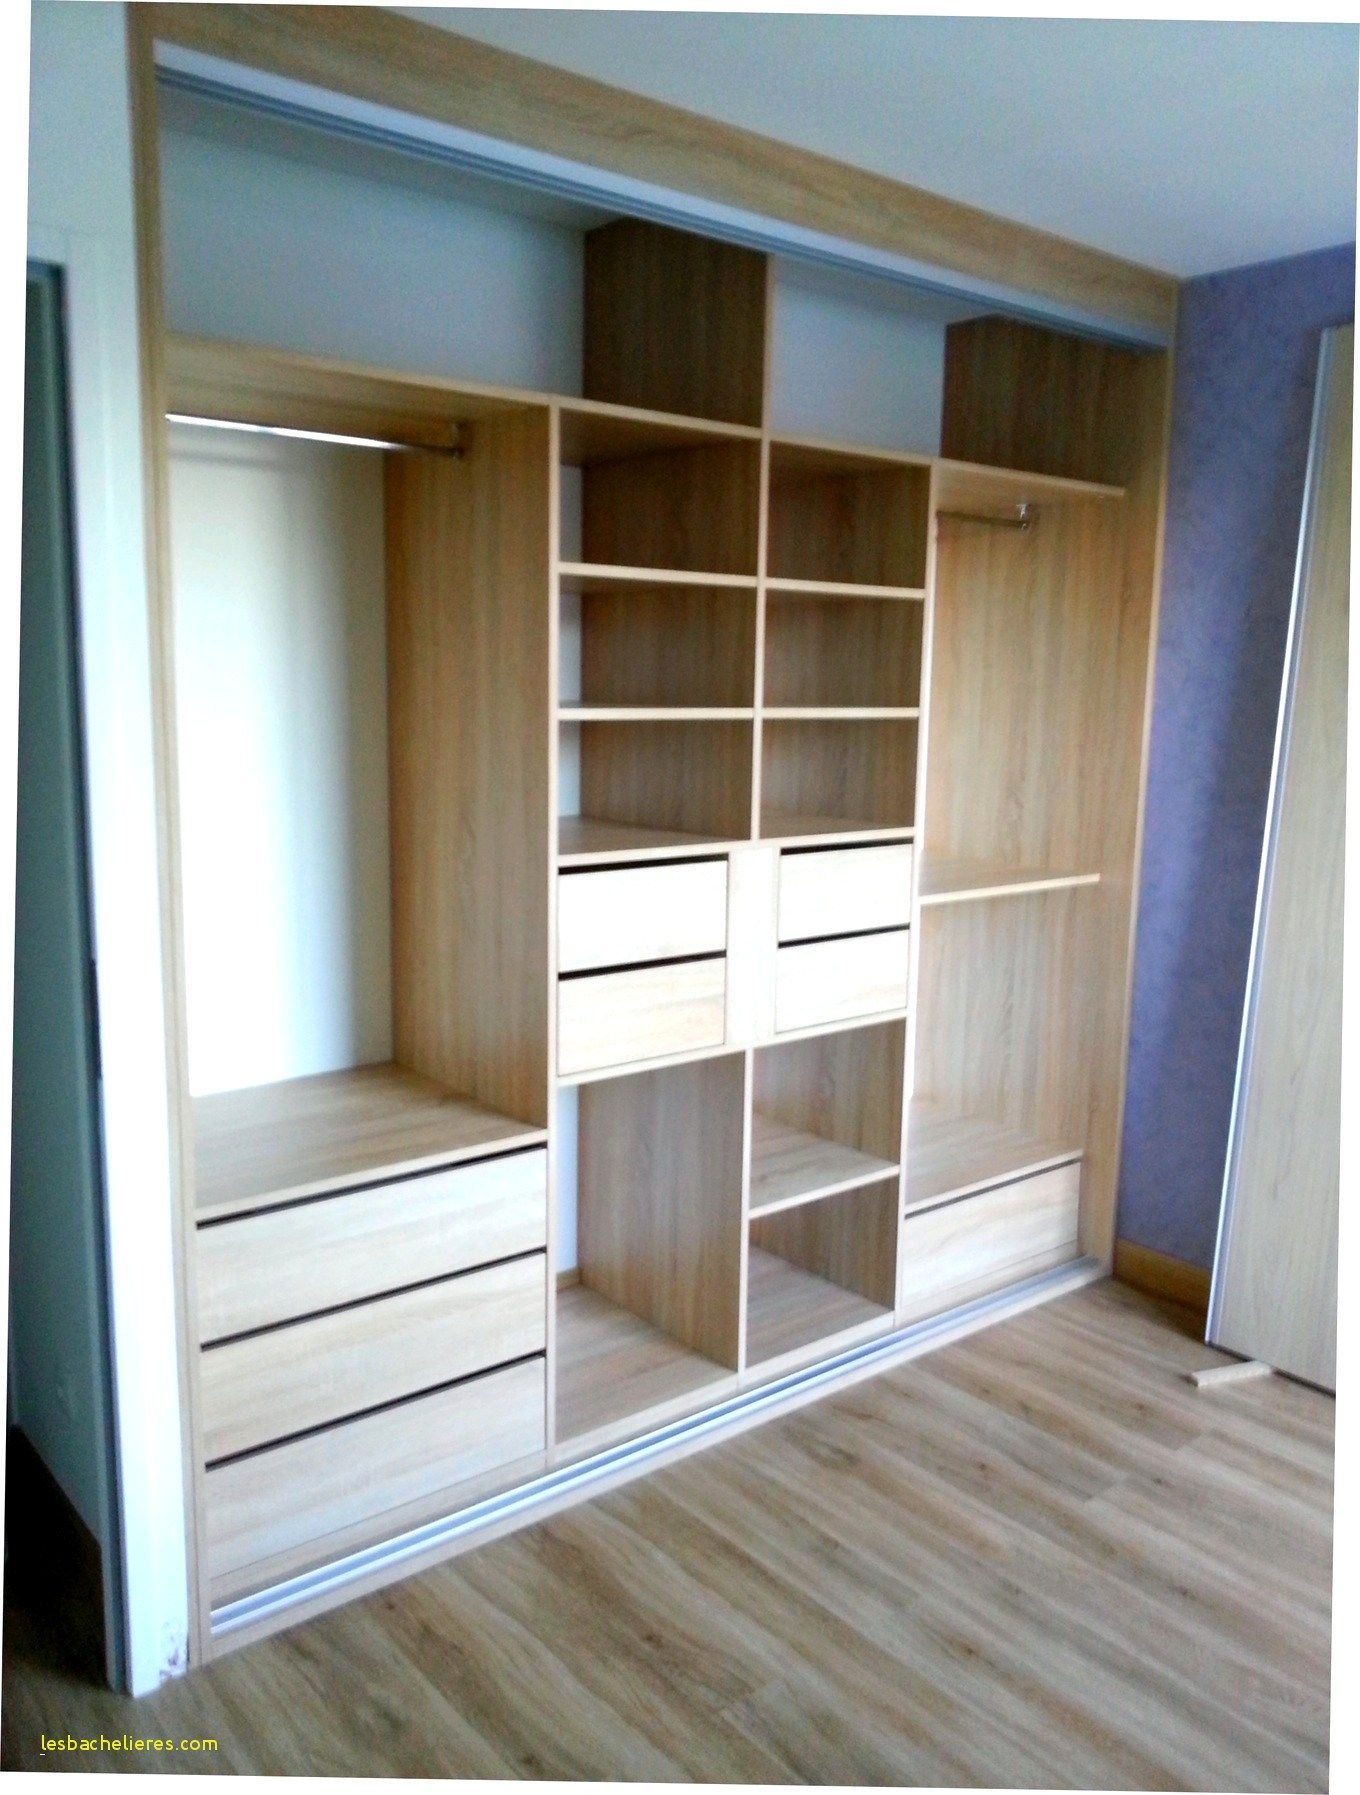 Beautiful Faire Un Dressing Sur Mesure Kayu Bedroom Bedroom Closet Design Closet Layout Wardrobe Furniture